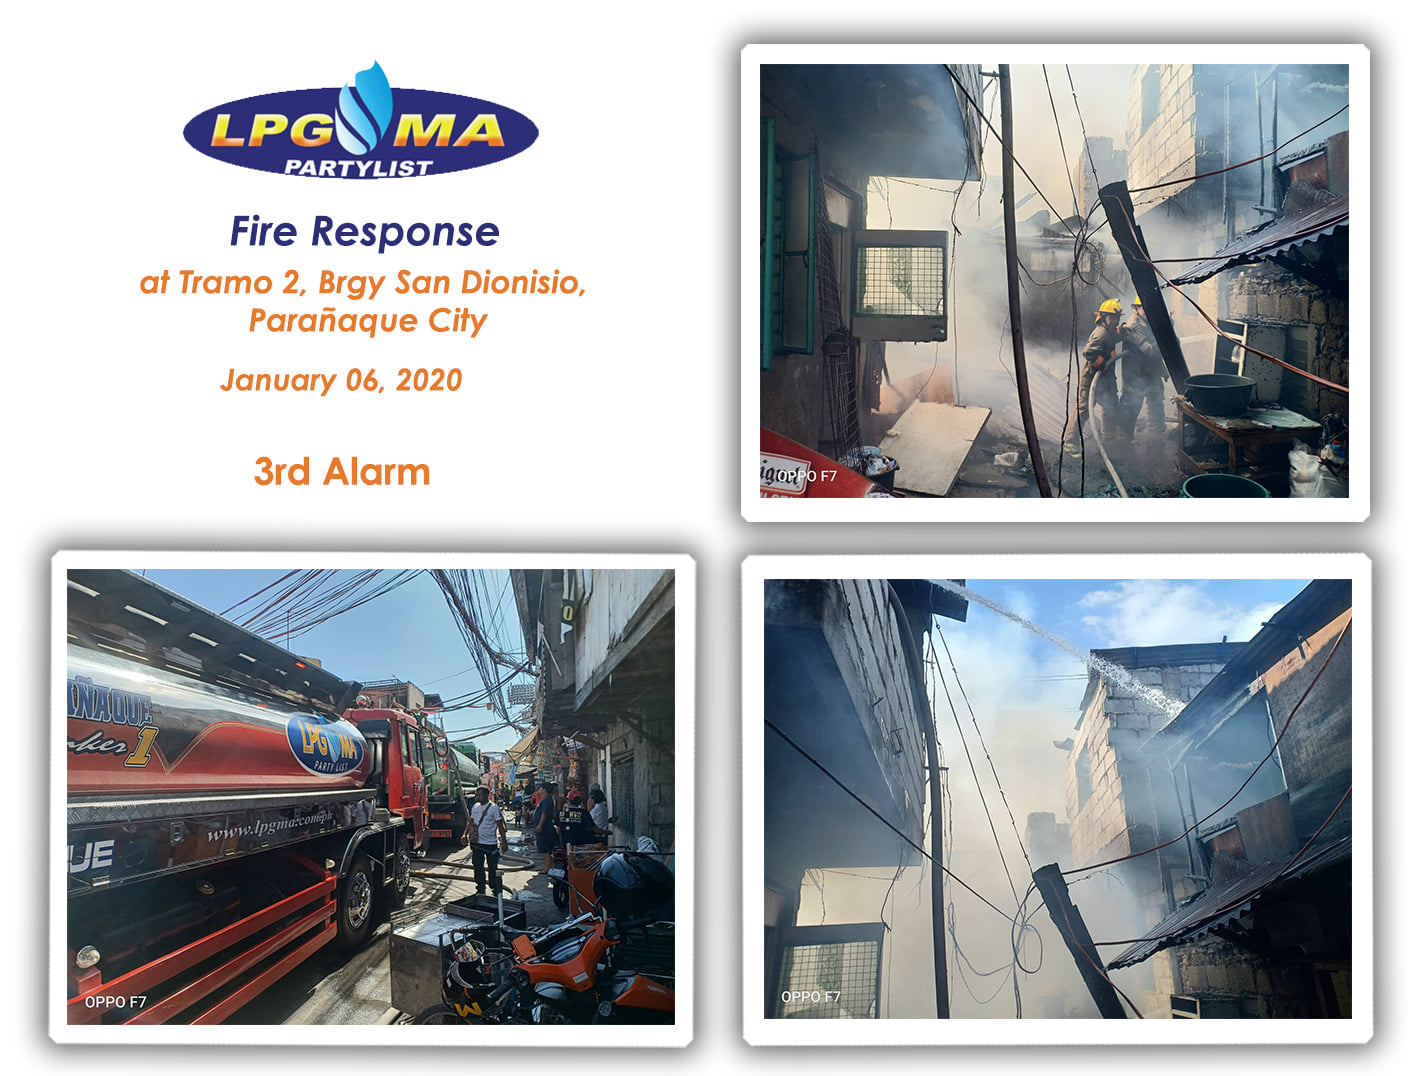 Jan 6 - LPGMA Fire Response